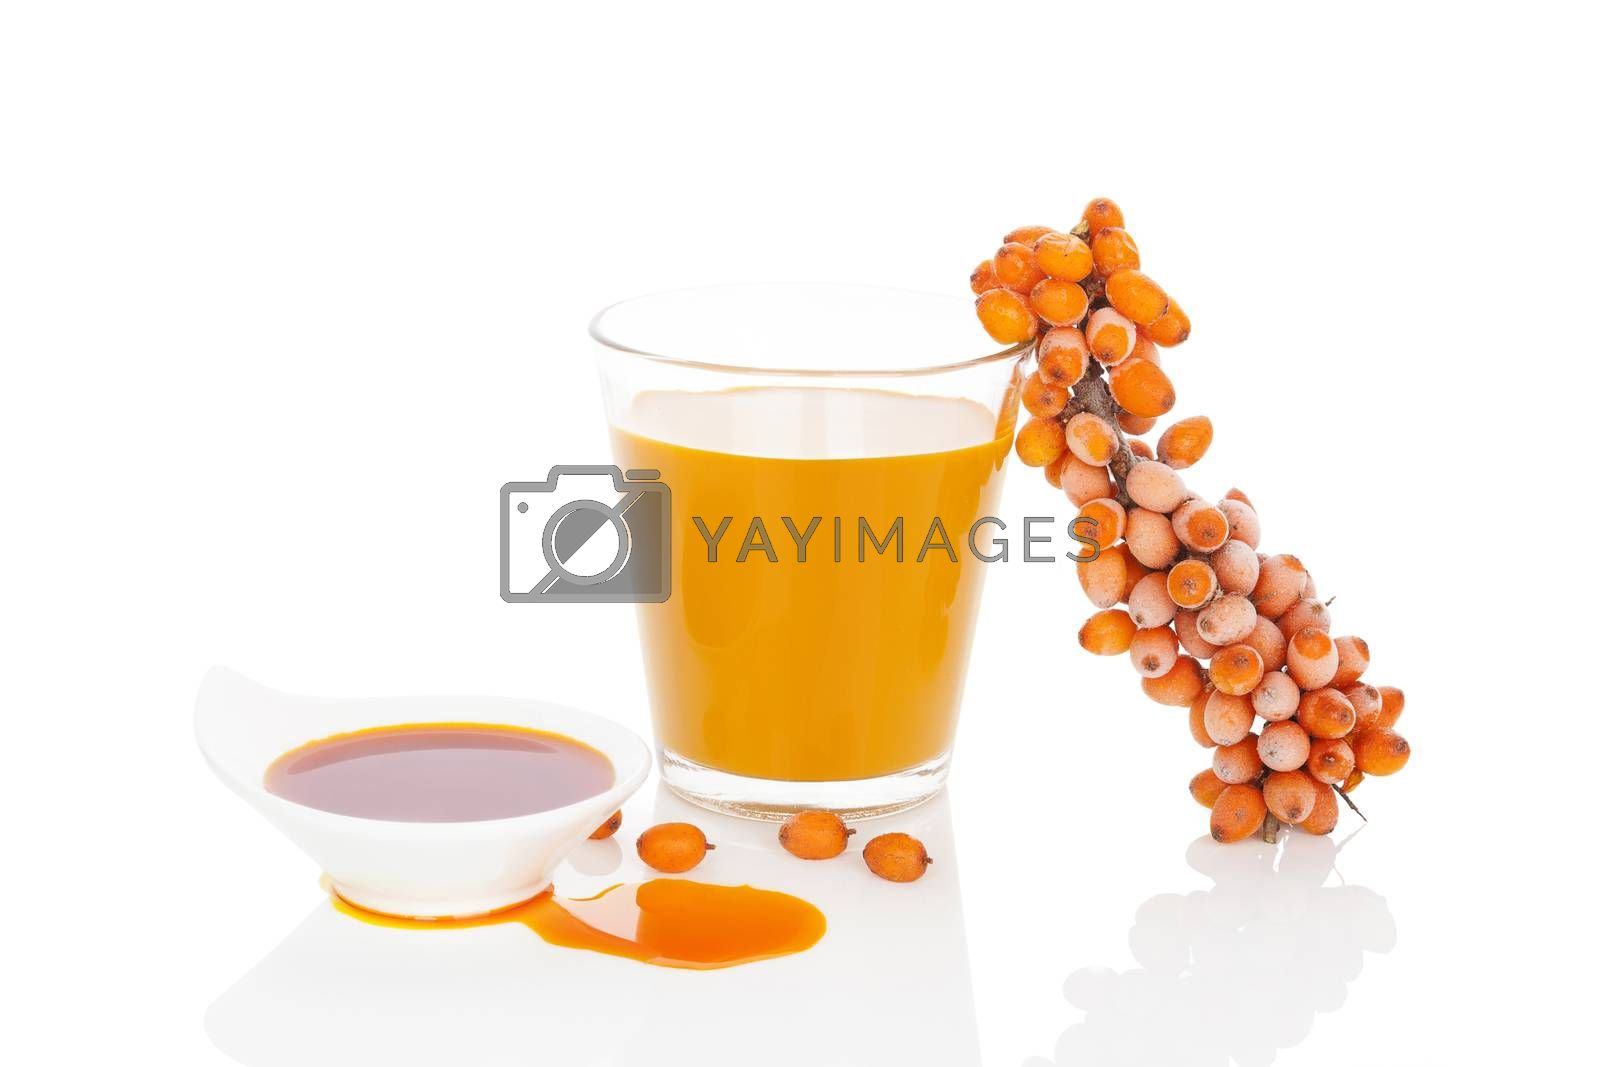 Sea buckthorn juice, oil and berries isolated on white background. Natural detox.